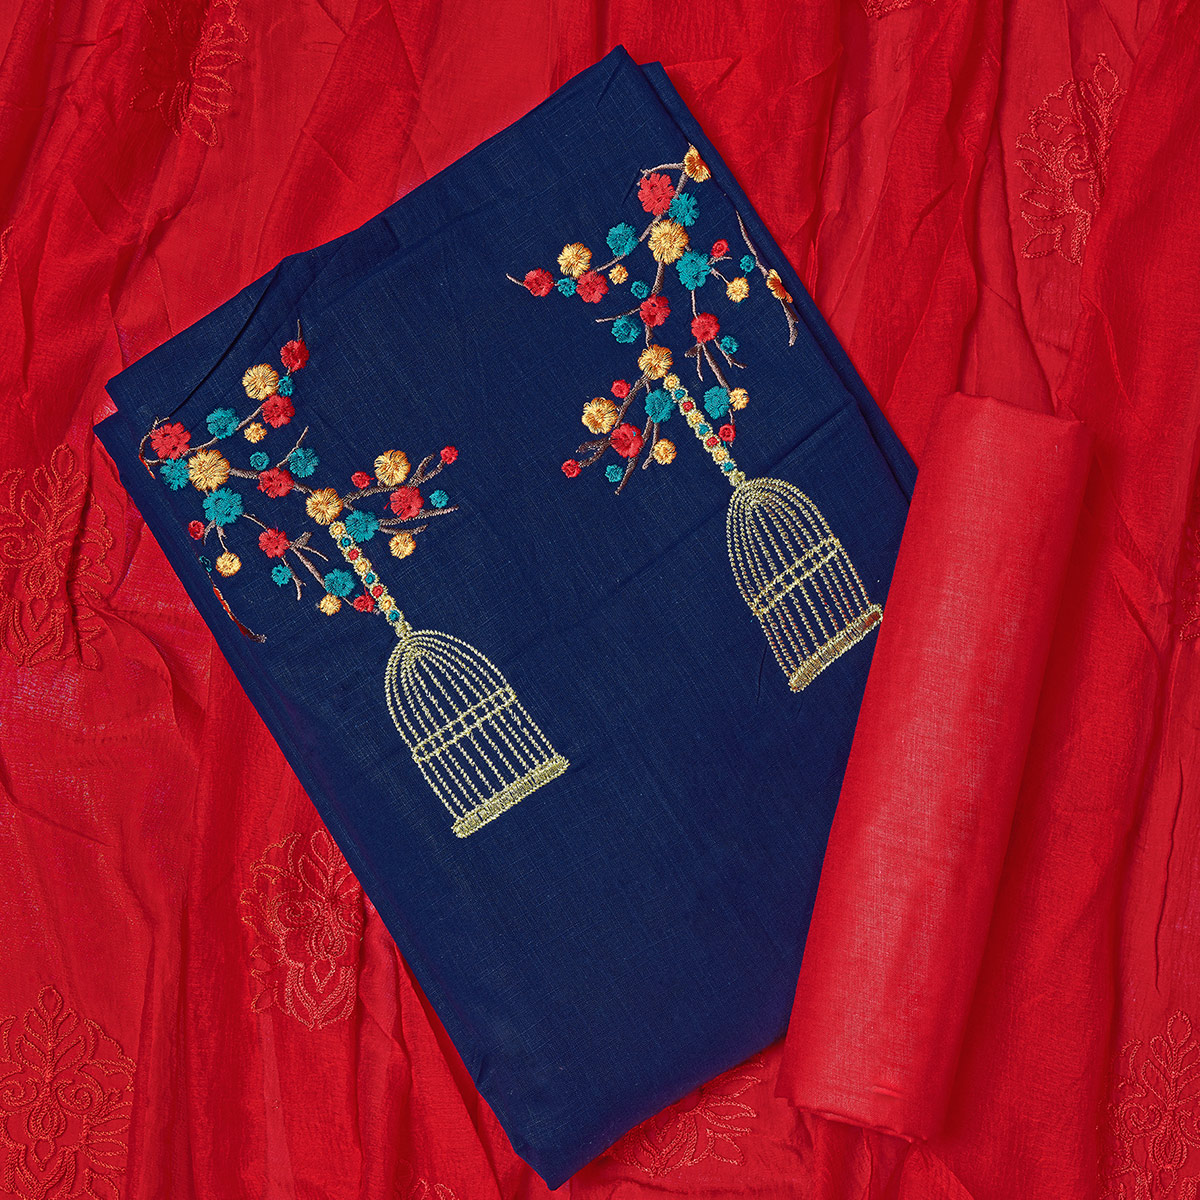 Pleasant Navy Blue Colored Partywear Embroidered Cotton Dress Material